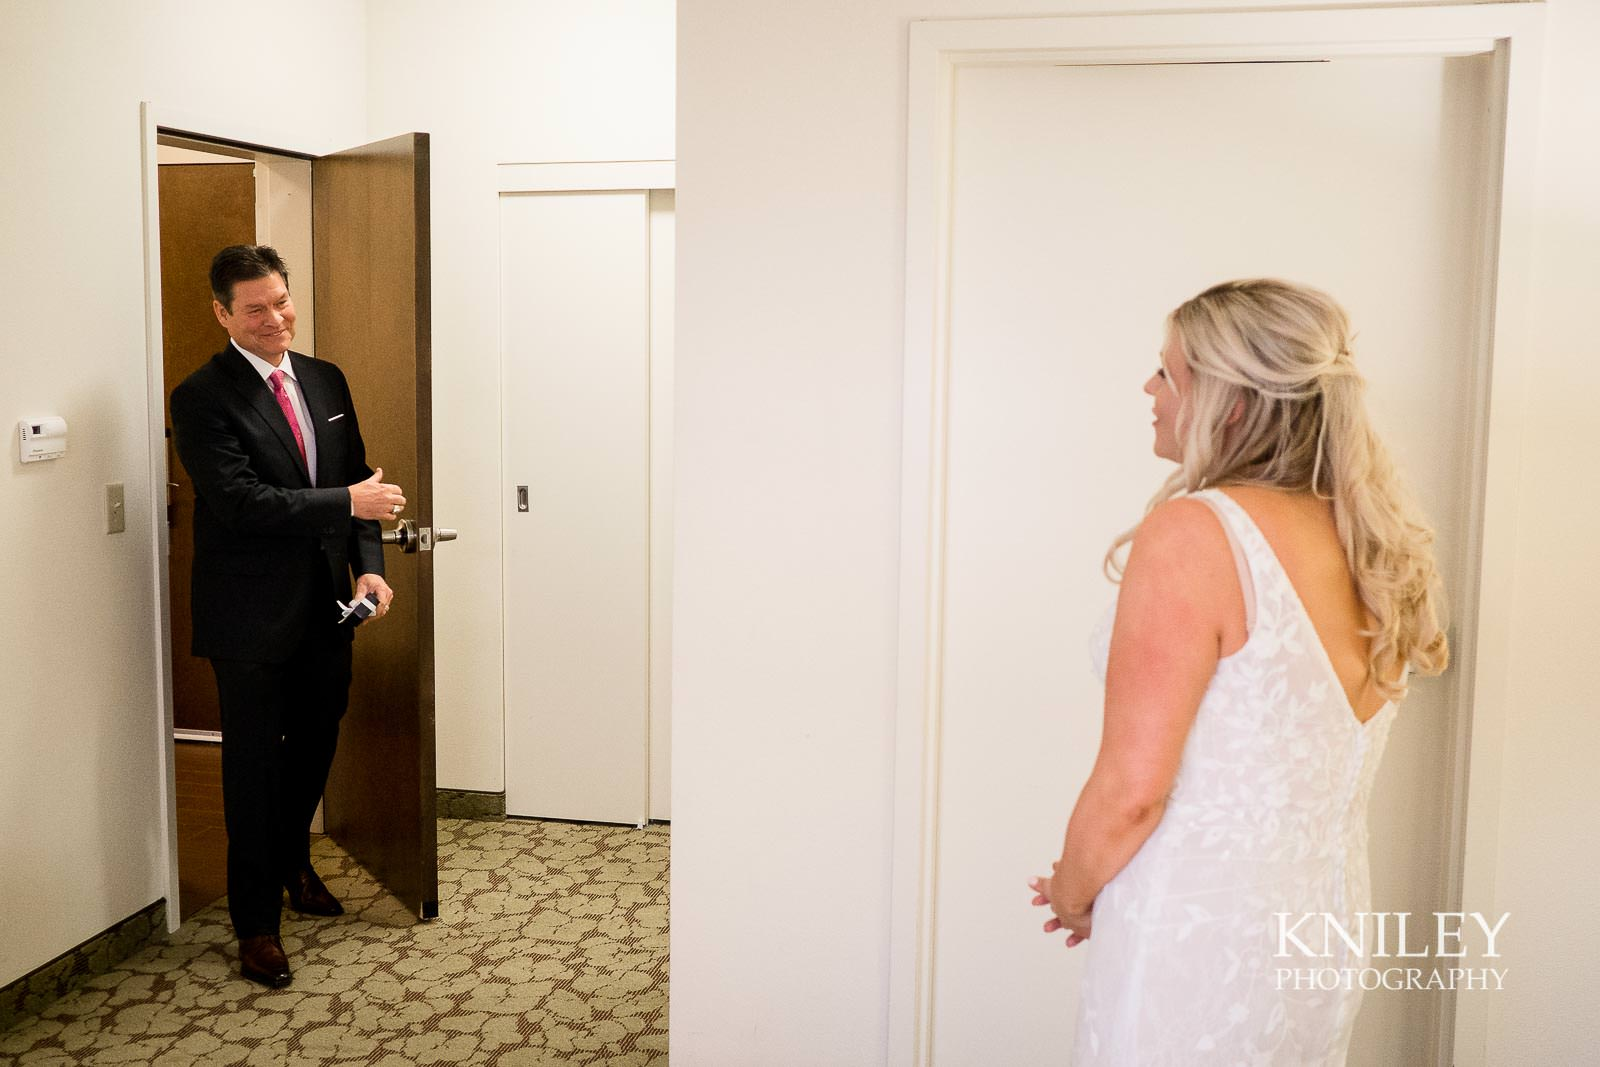 05-Hilton-Garden-Inn-Downtown-Wedding-Getting-Ready-Rochester-NY-Kniley-Photography.jpg